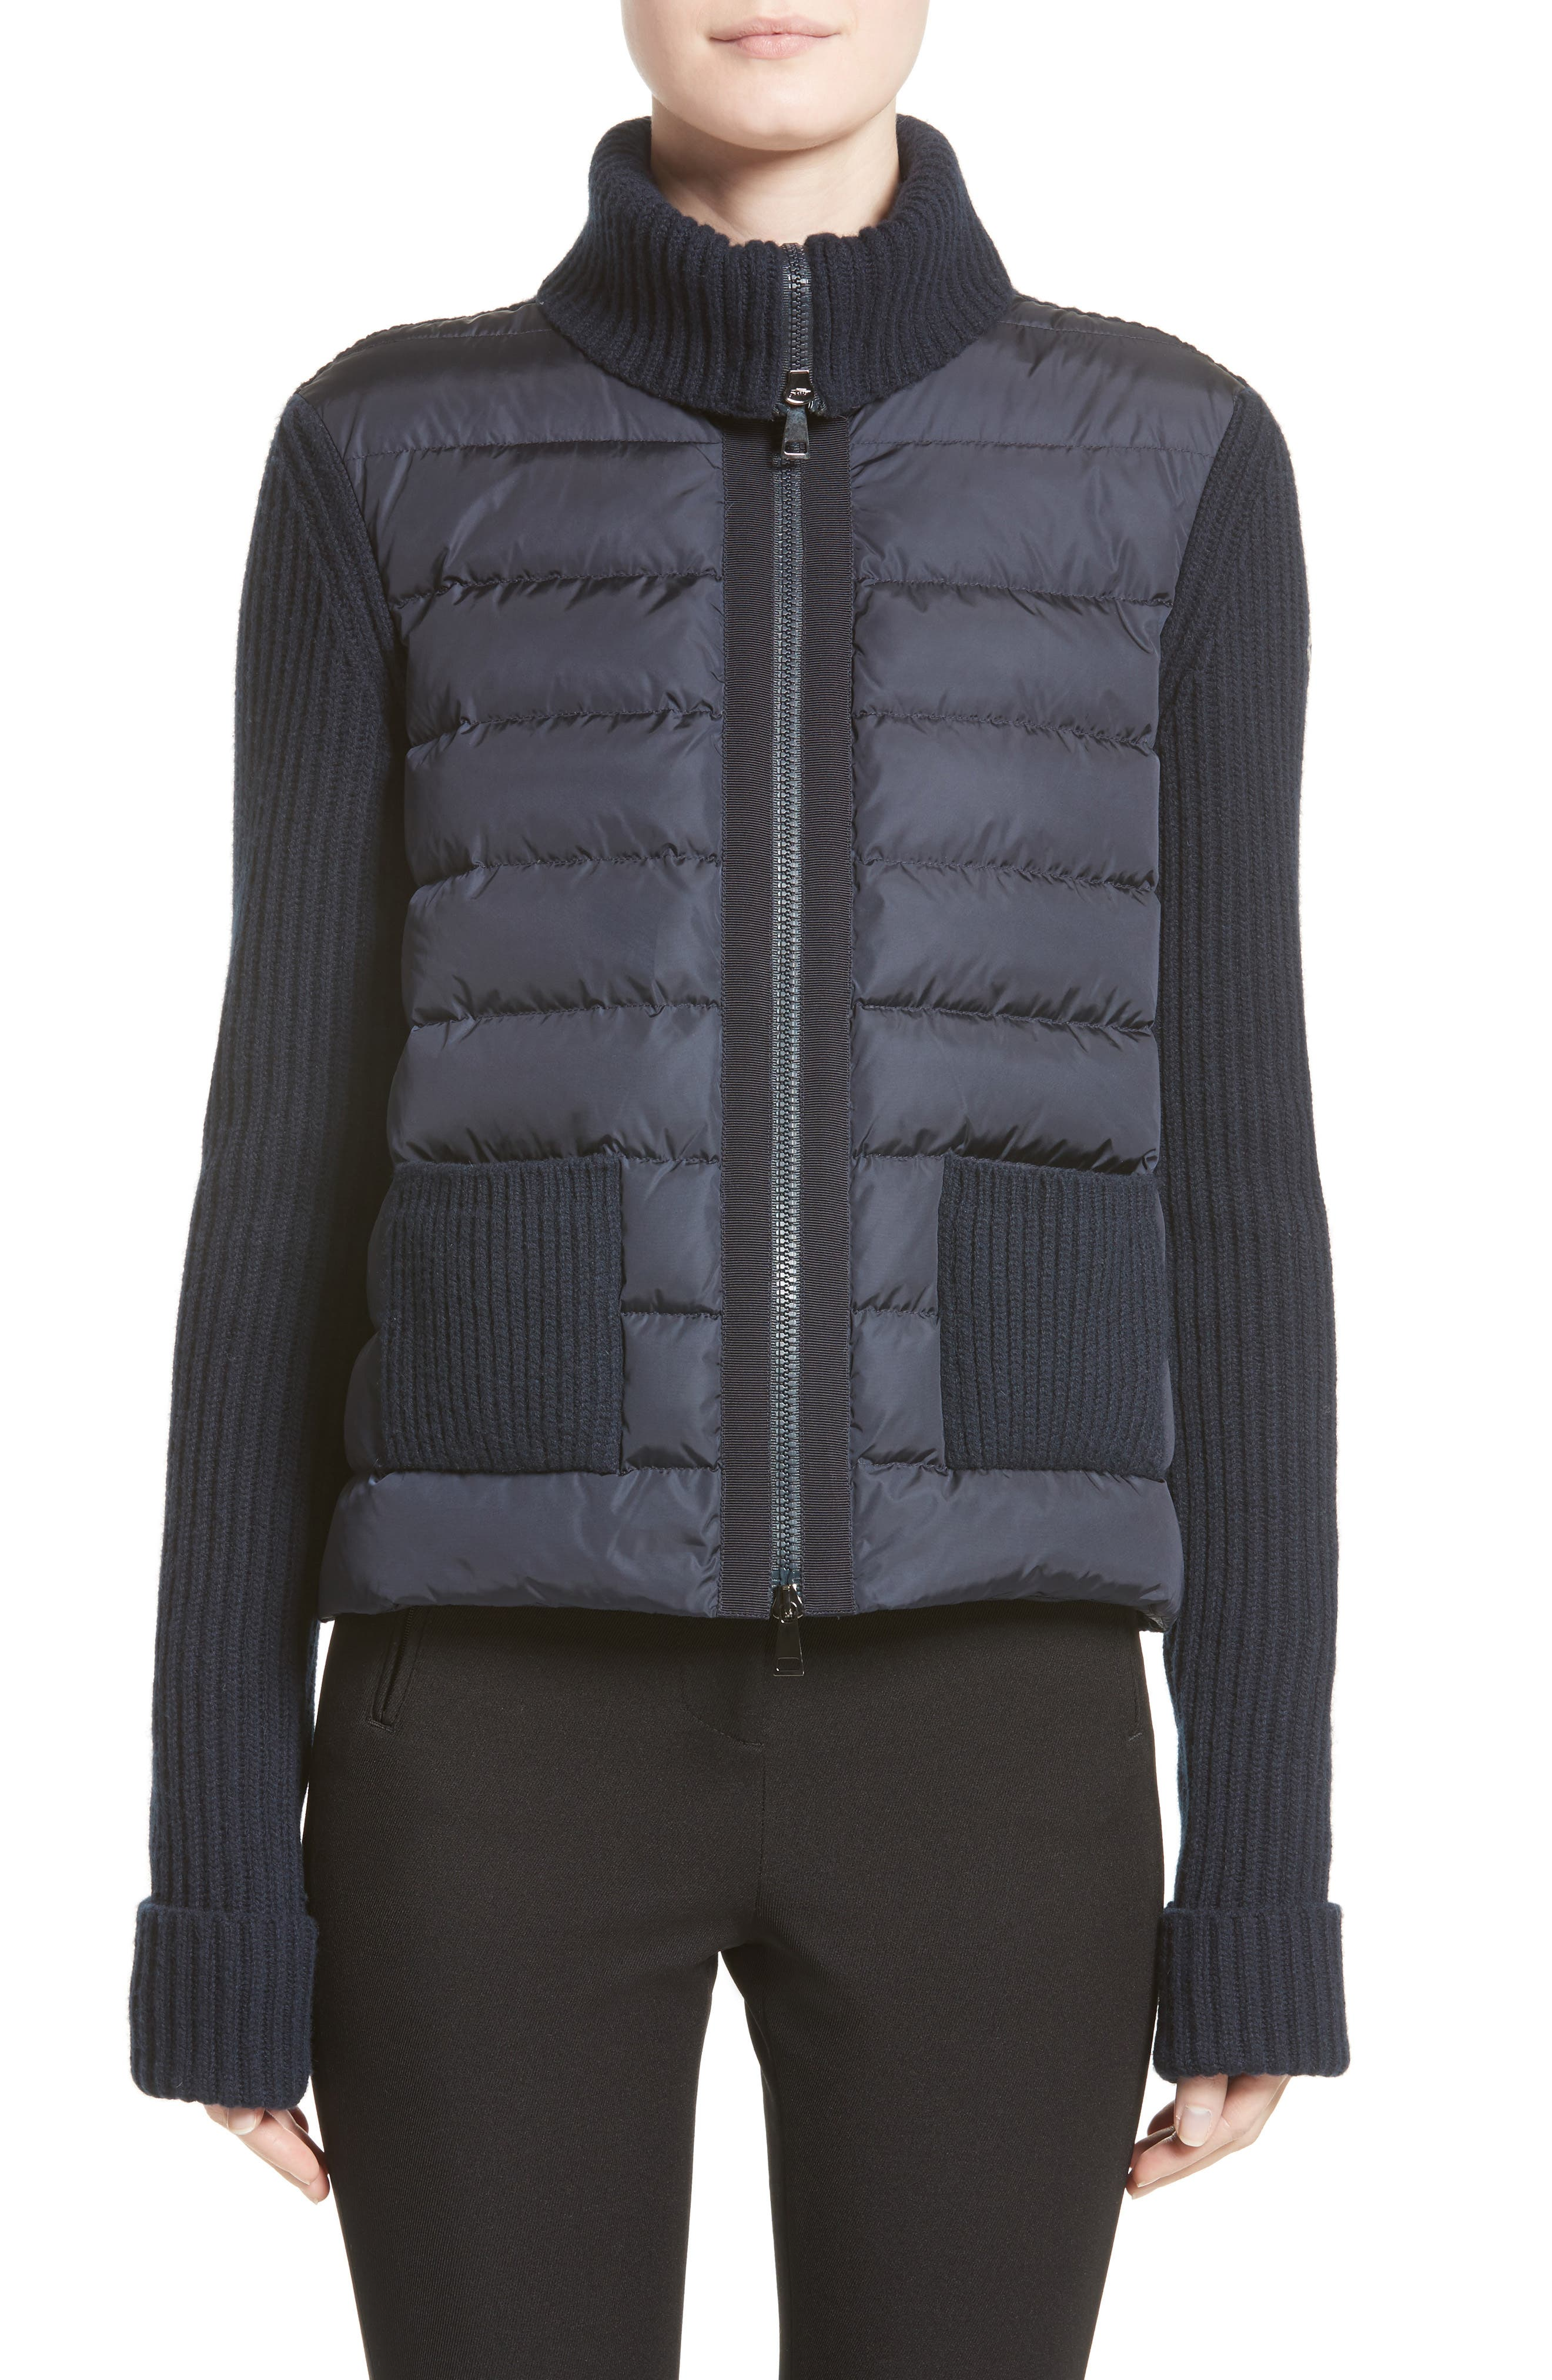 moncler womens sweater jacket